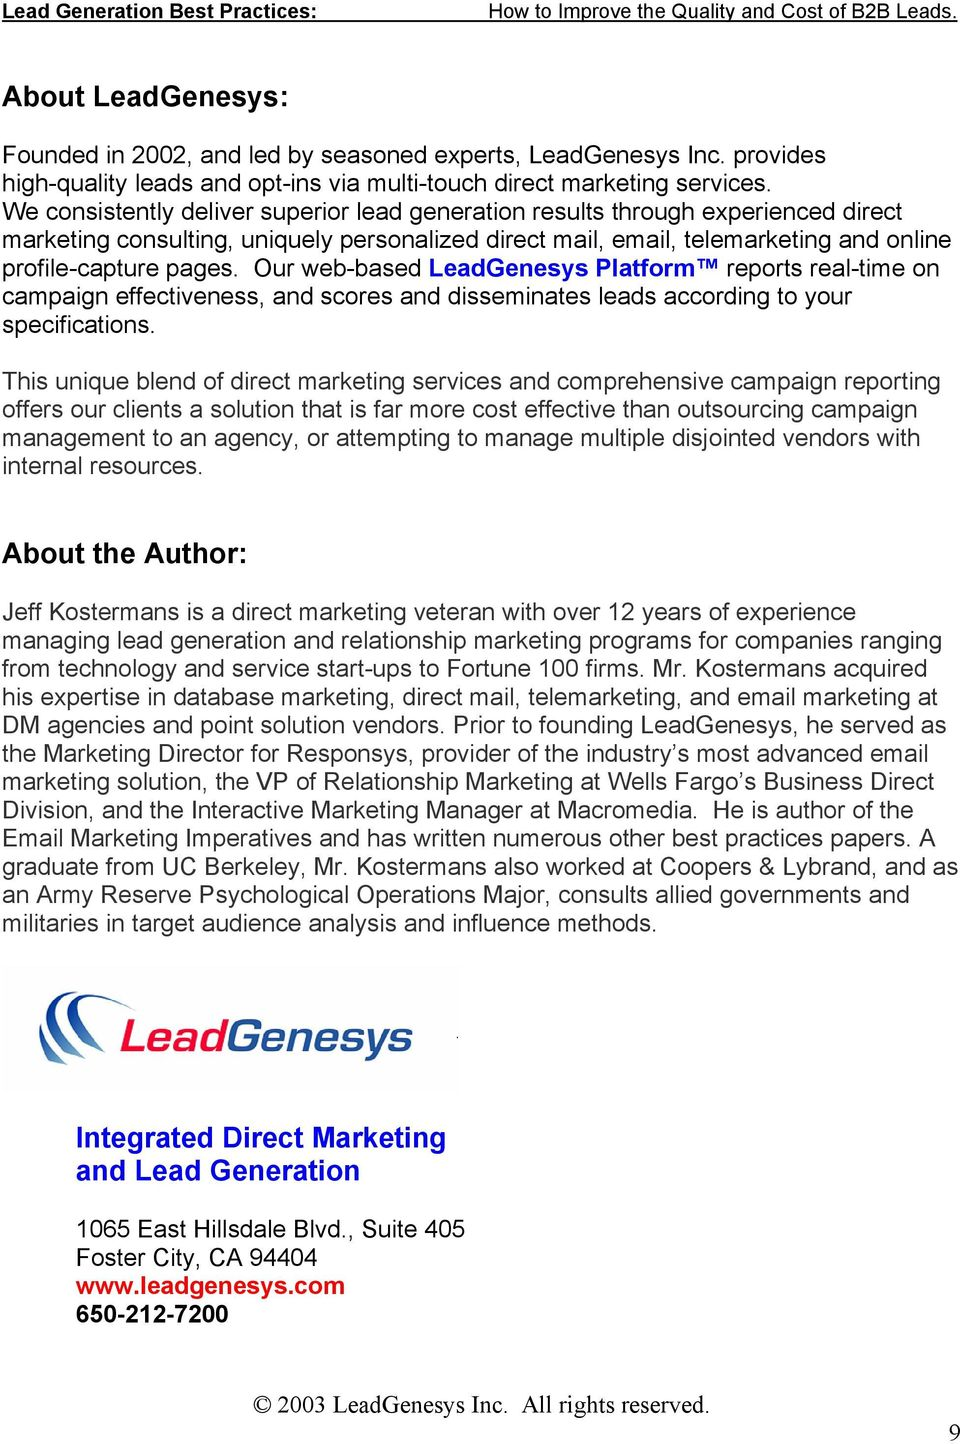 Our web-based LeadGenesys Platform reports real-time on campaign effectiveness, and scores and disseminates leads according to your specifications.